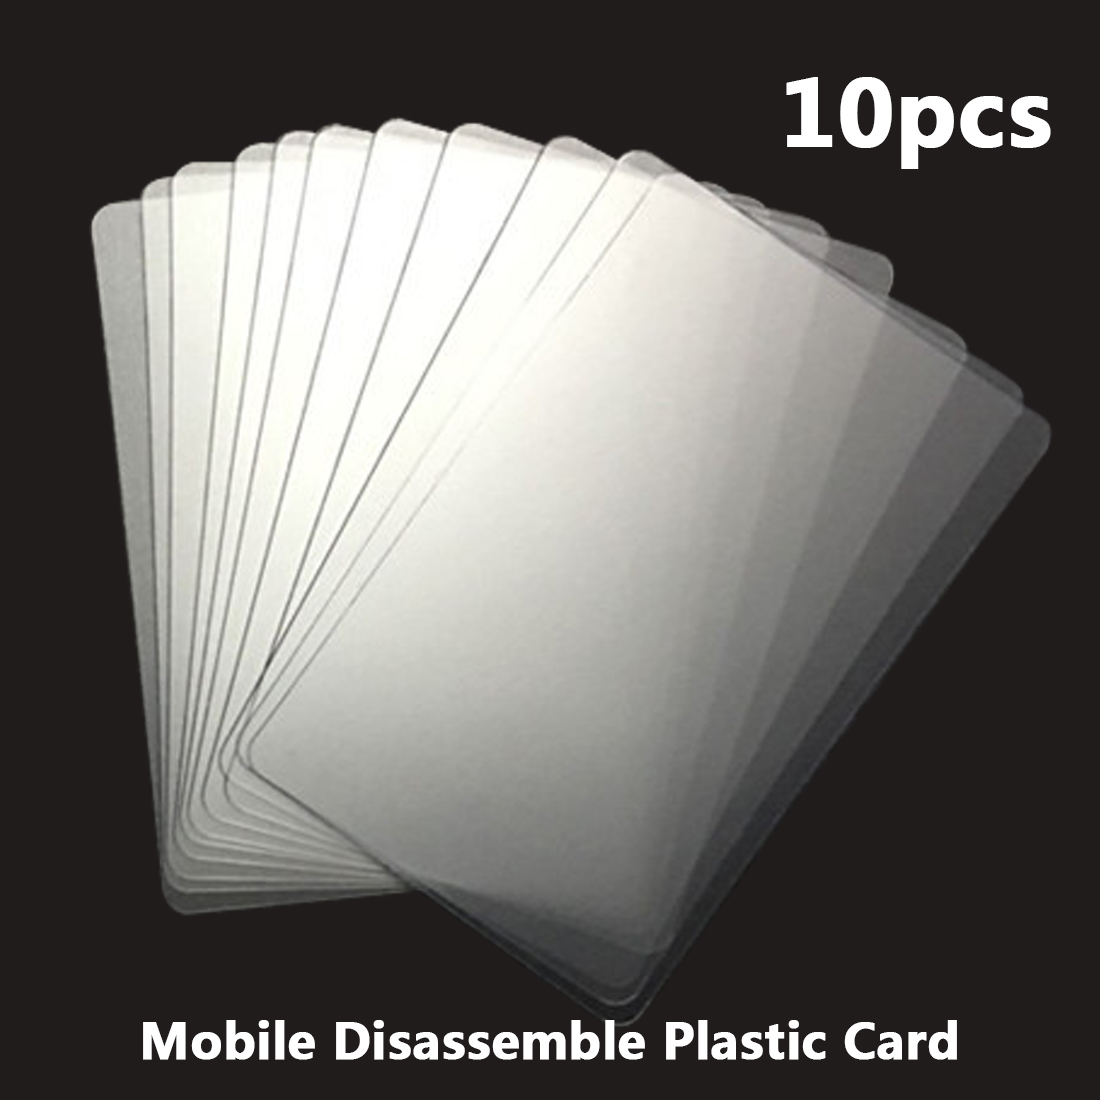 10pcs 10pcs 10pcs Handy Plastic Card Pry Opening Scraper For IPad Tablet For Samsung Mobile Phone Glued Screen Repair Tool